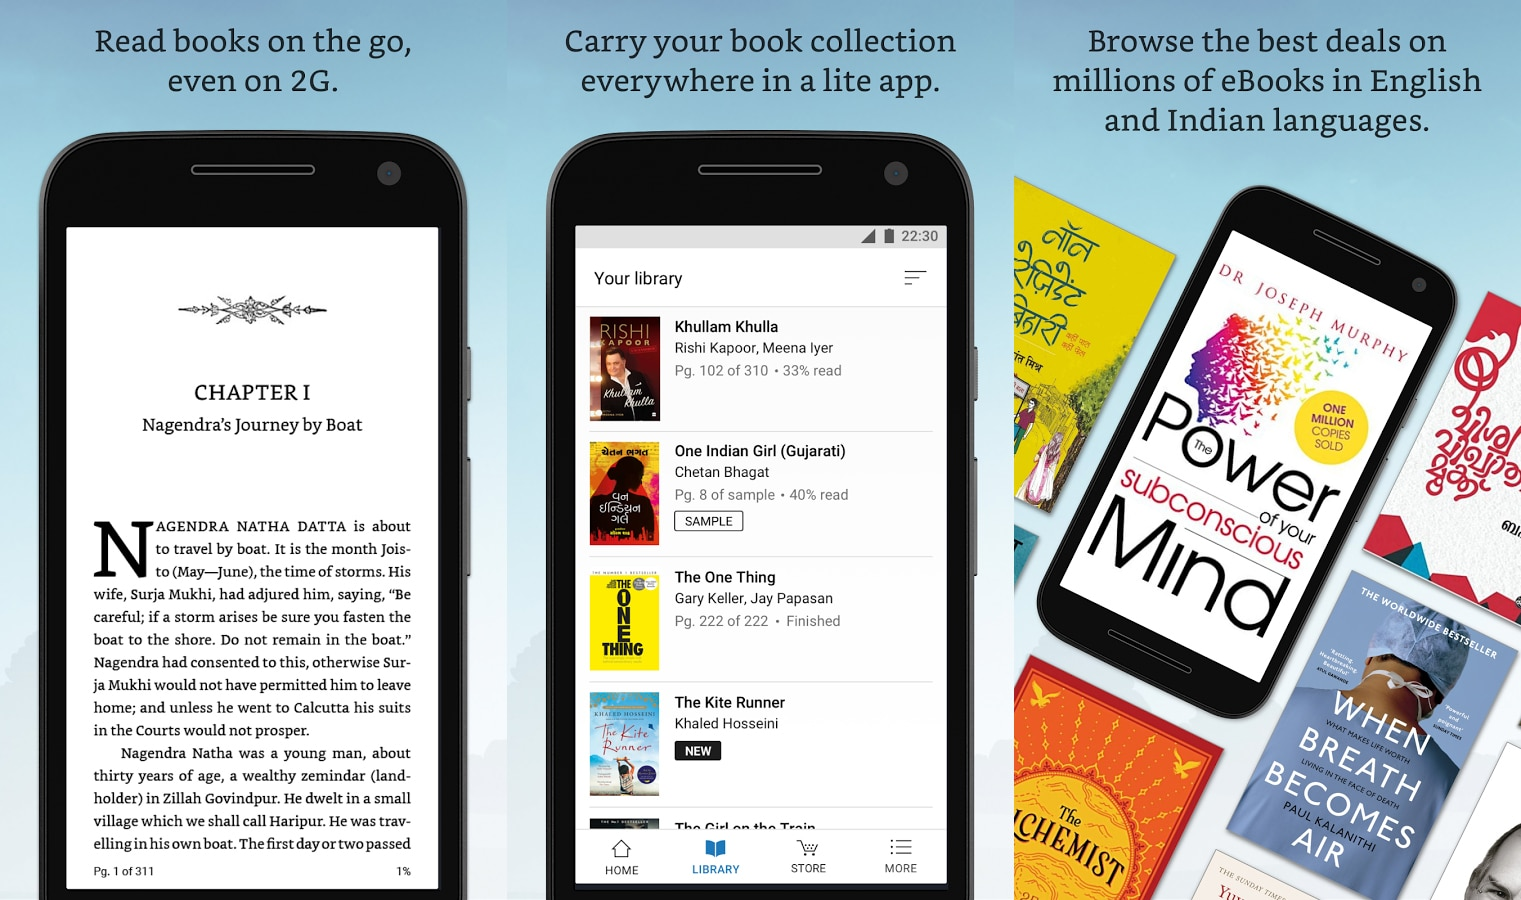 Android Lite apps are breathing a second life into e-readers